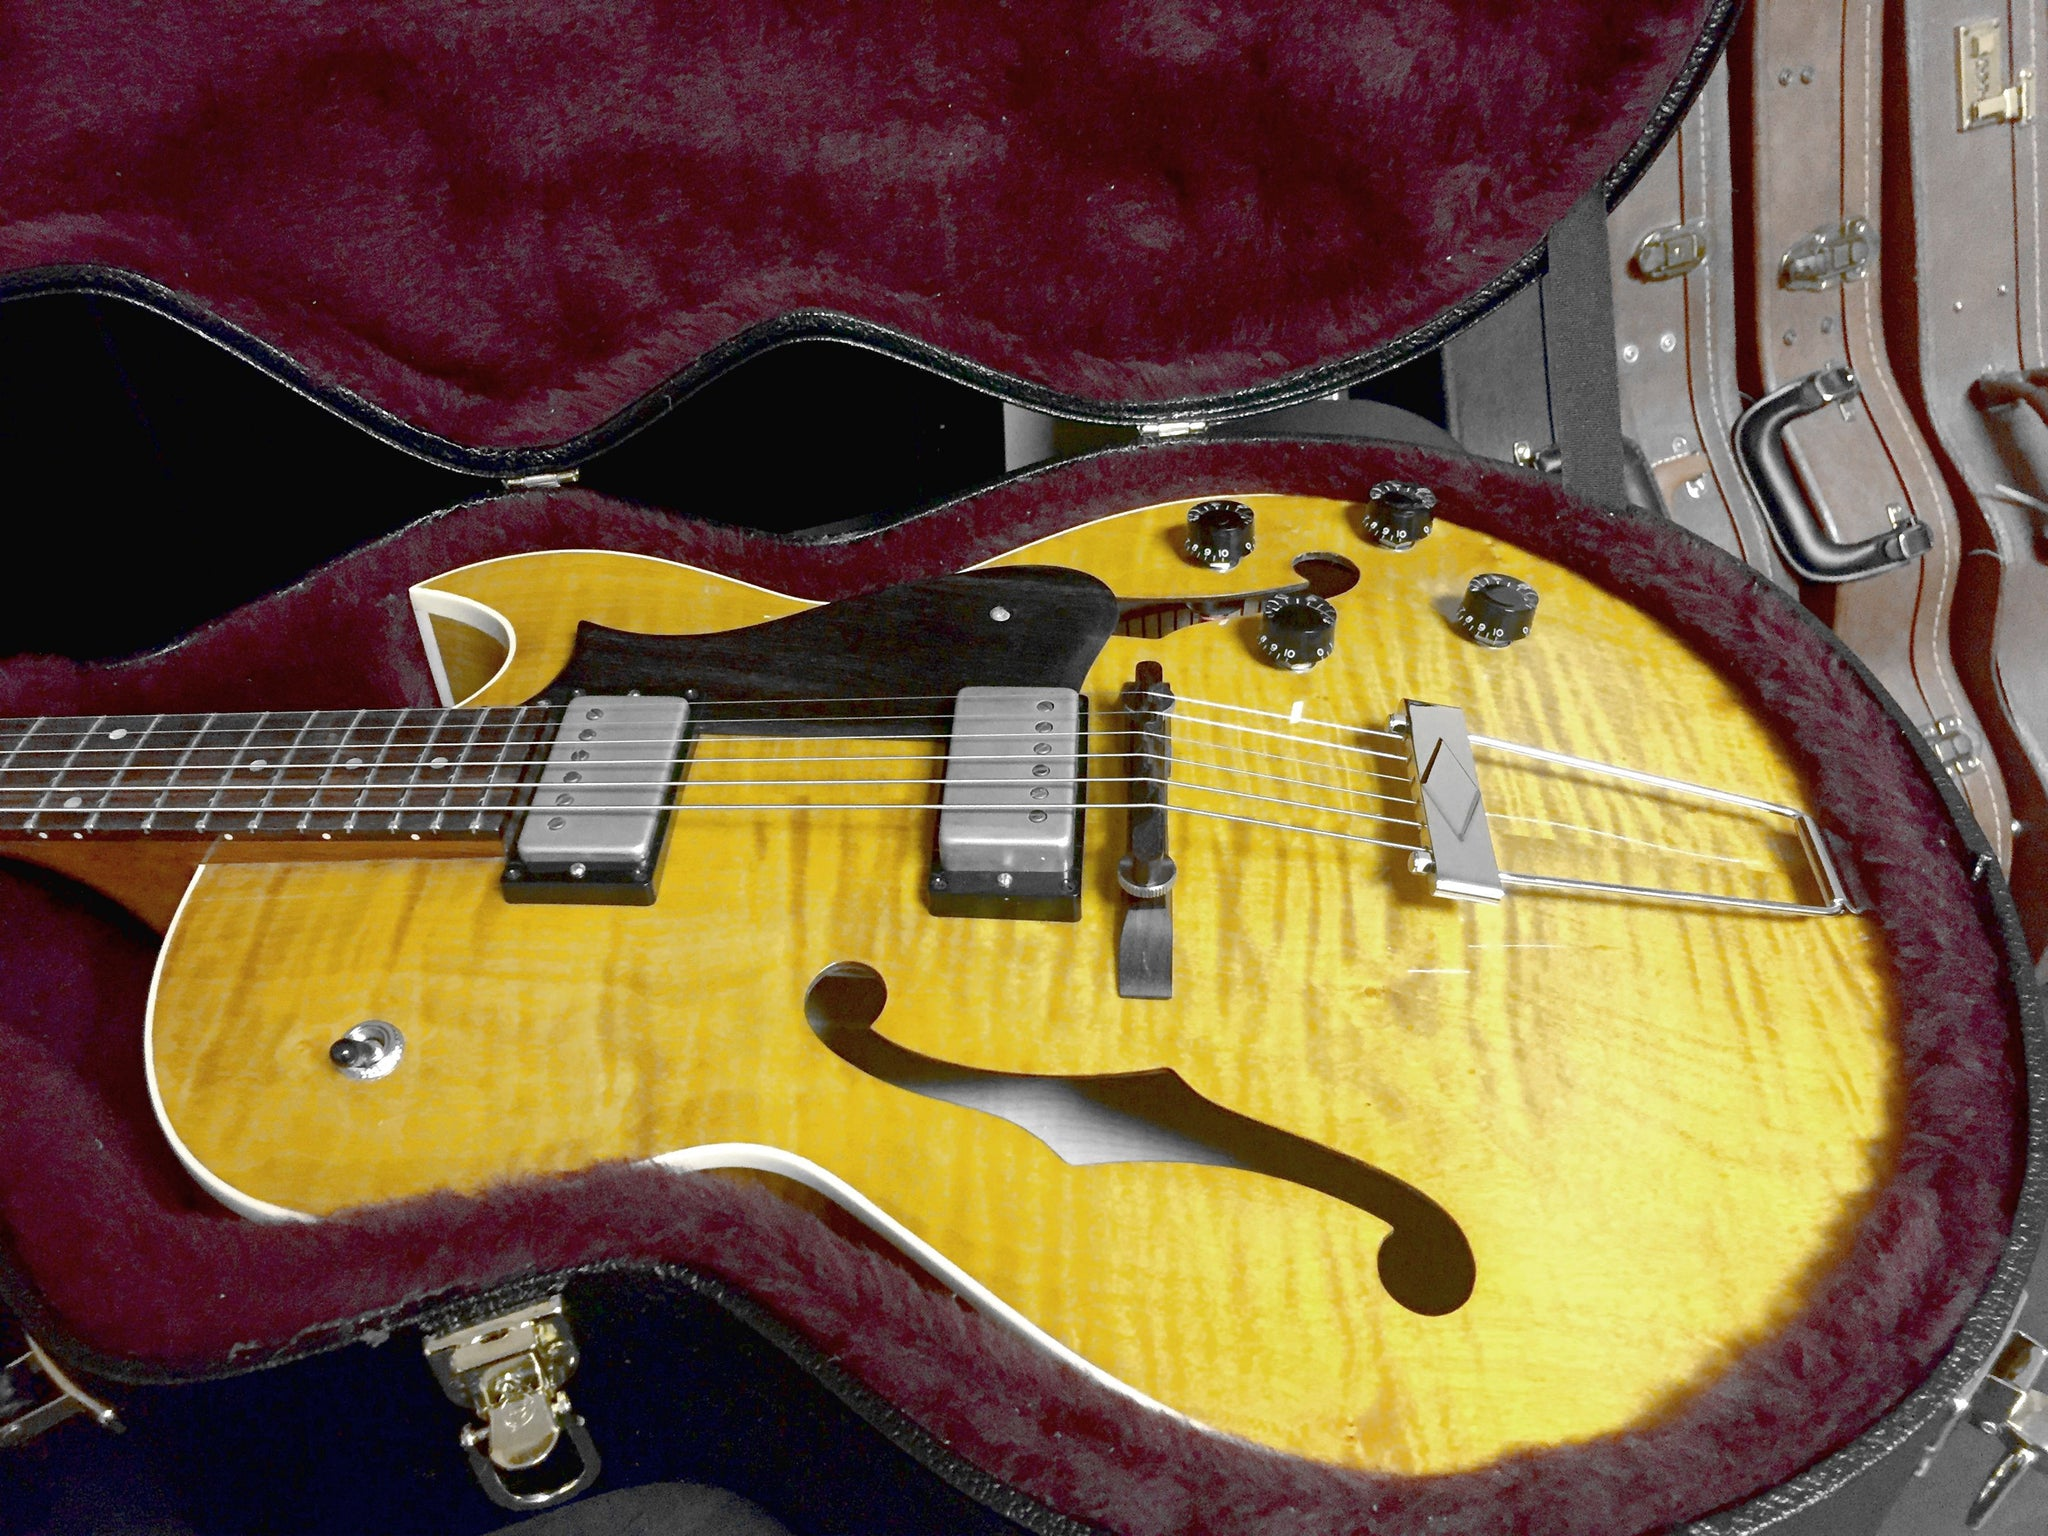 Heritage H-575 Custom Carved Hollow Body in Amber Translucent ****SOLD****